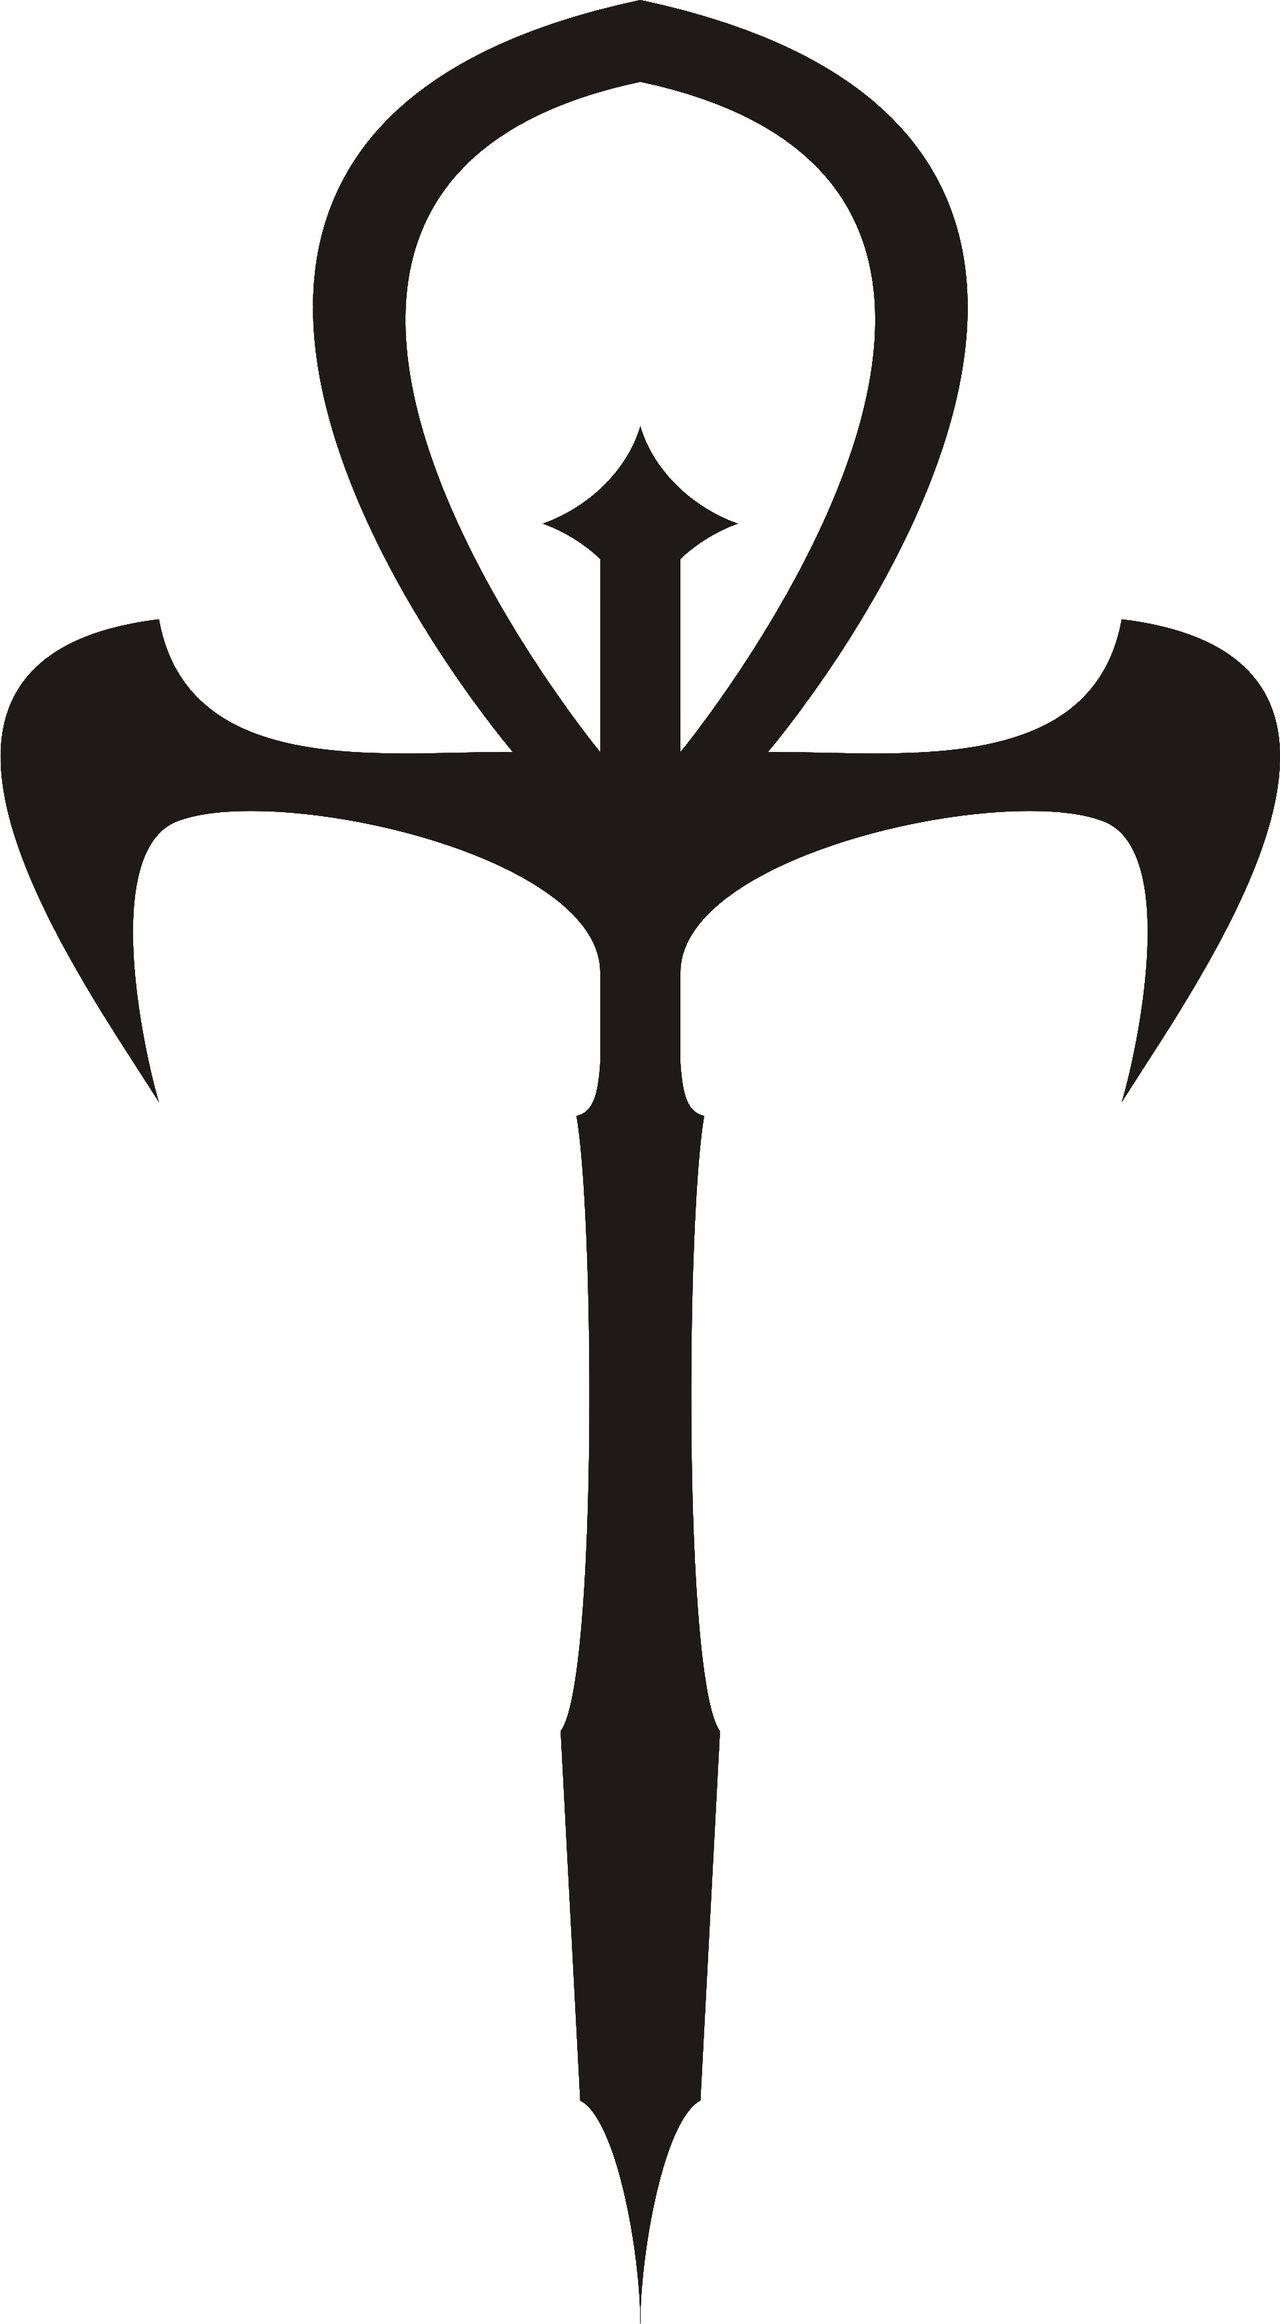 Ankh By Virgilianshailer On Clipart Library